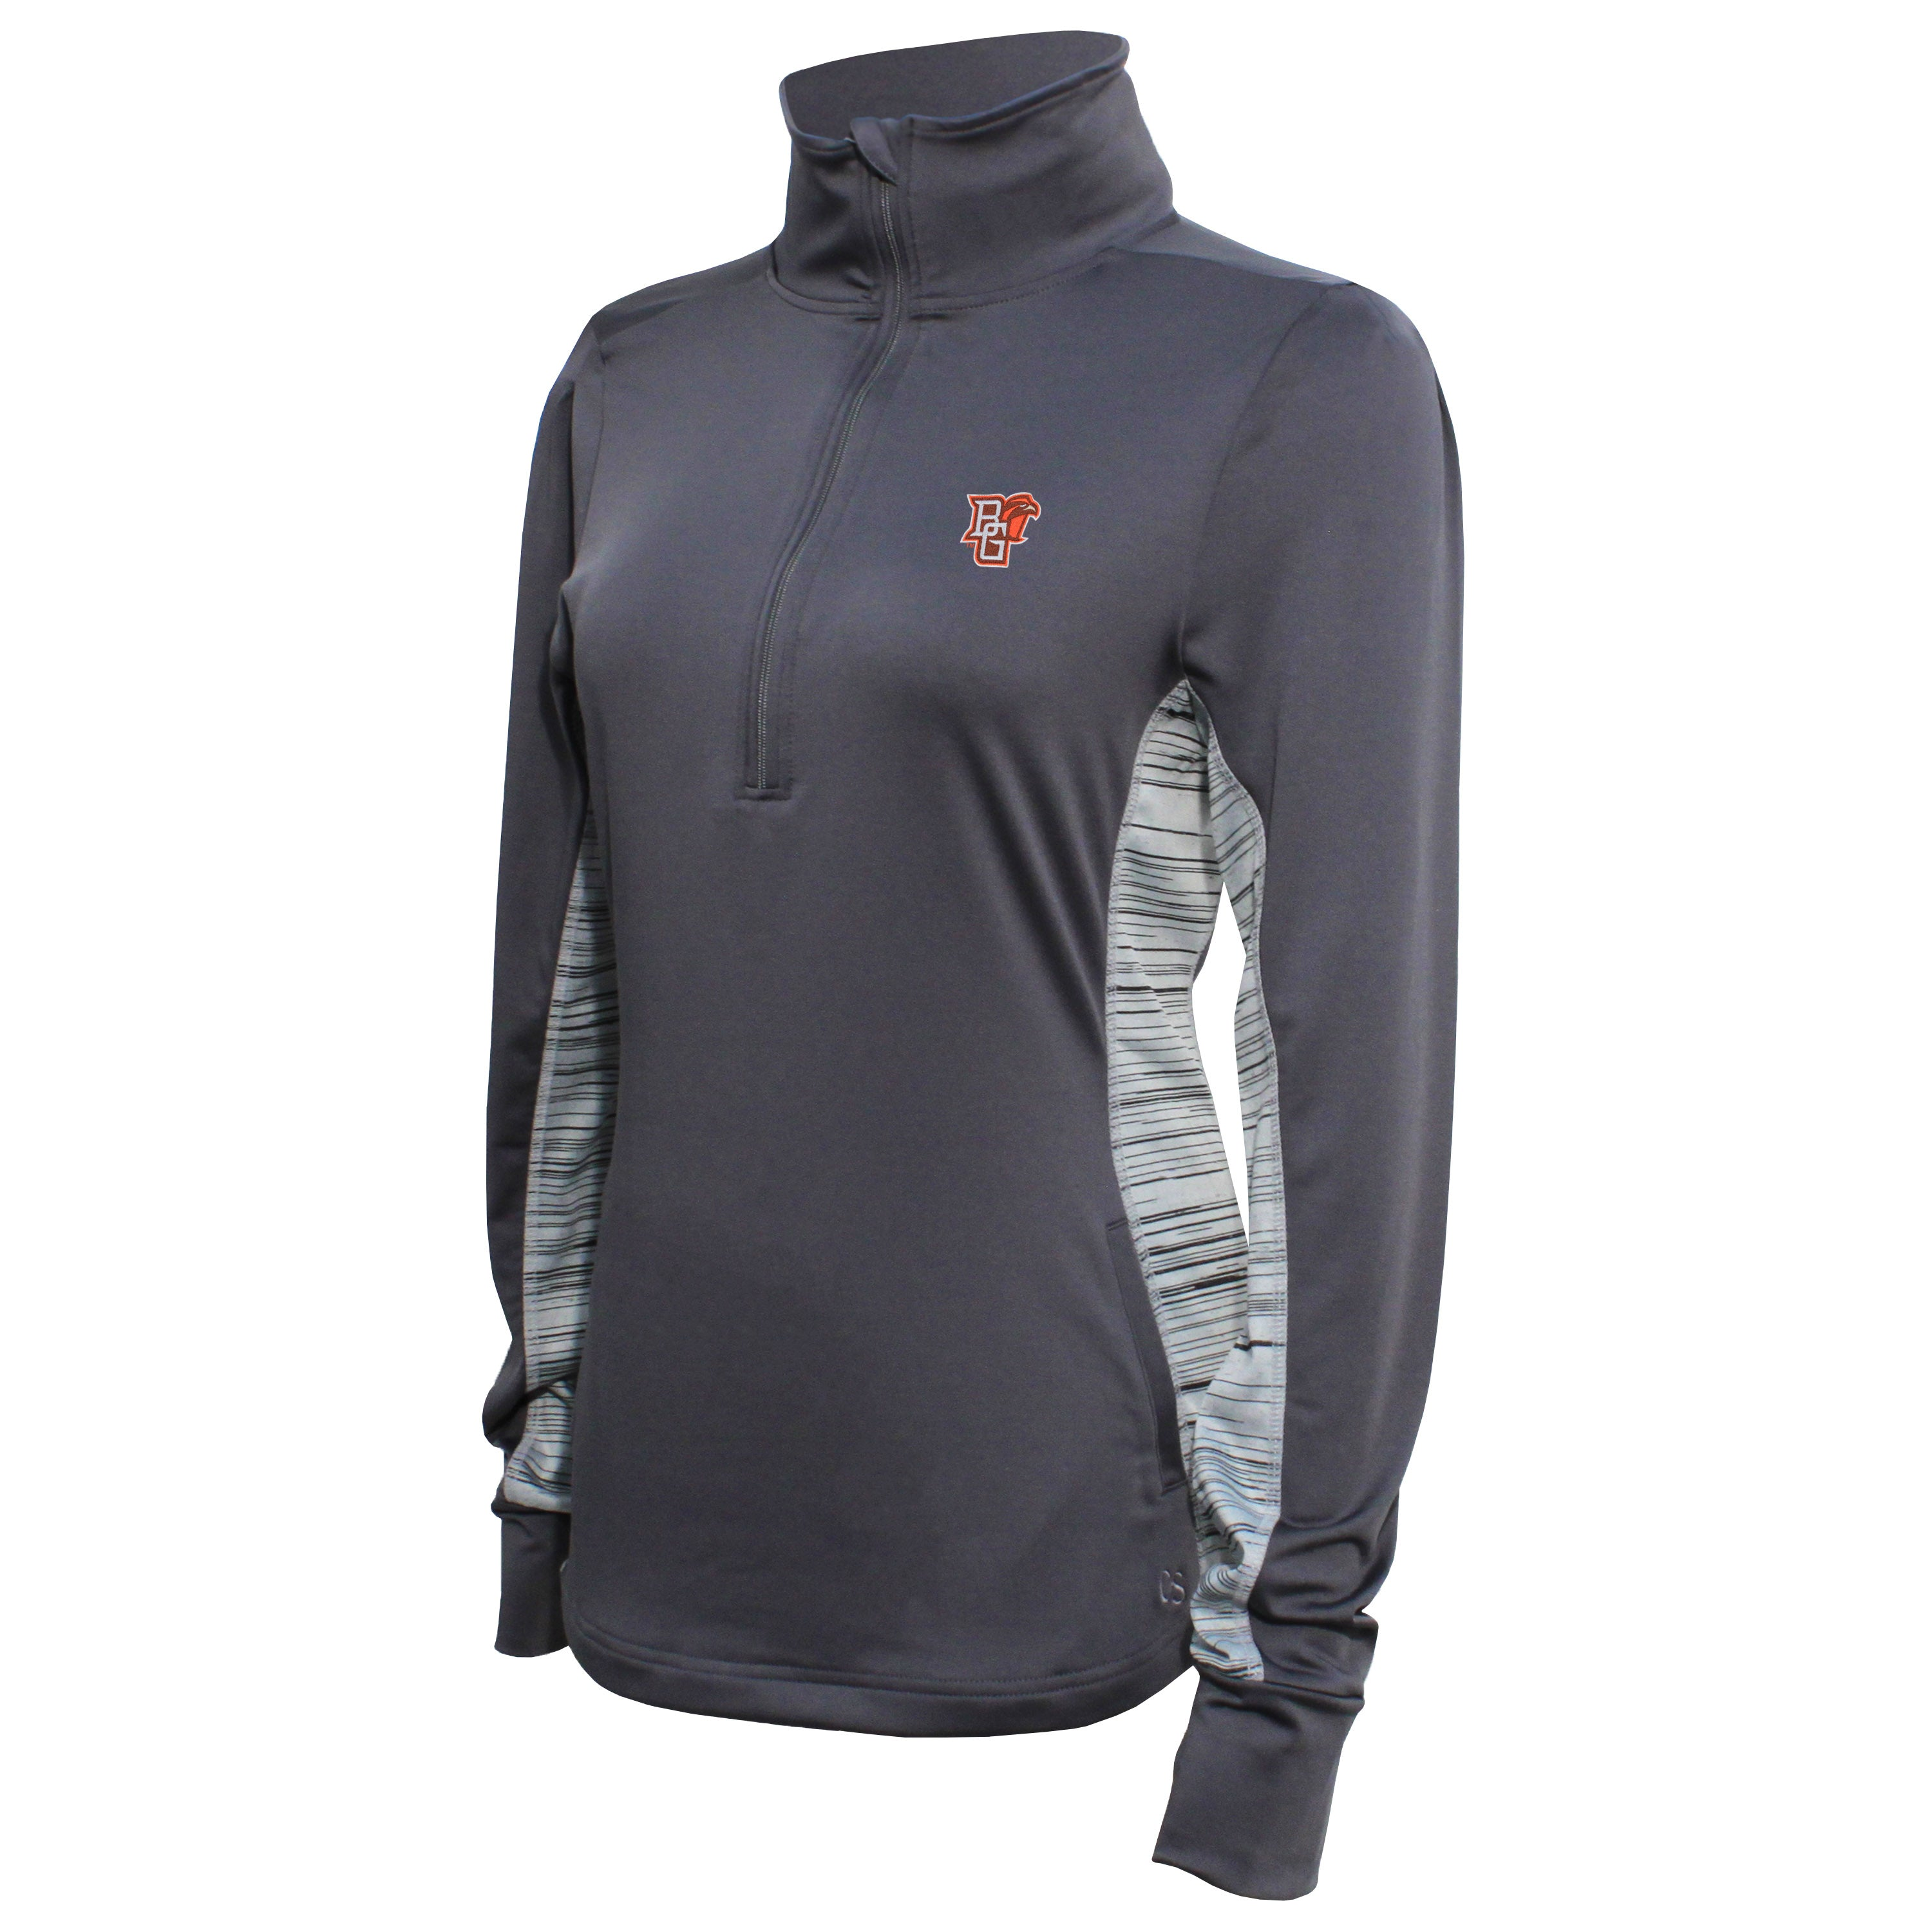 Crable Bowling Green Women's Carbon Half Zip Tech Pullover